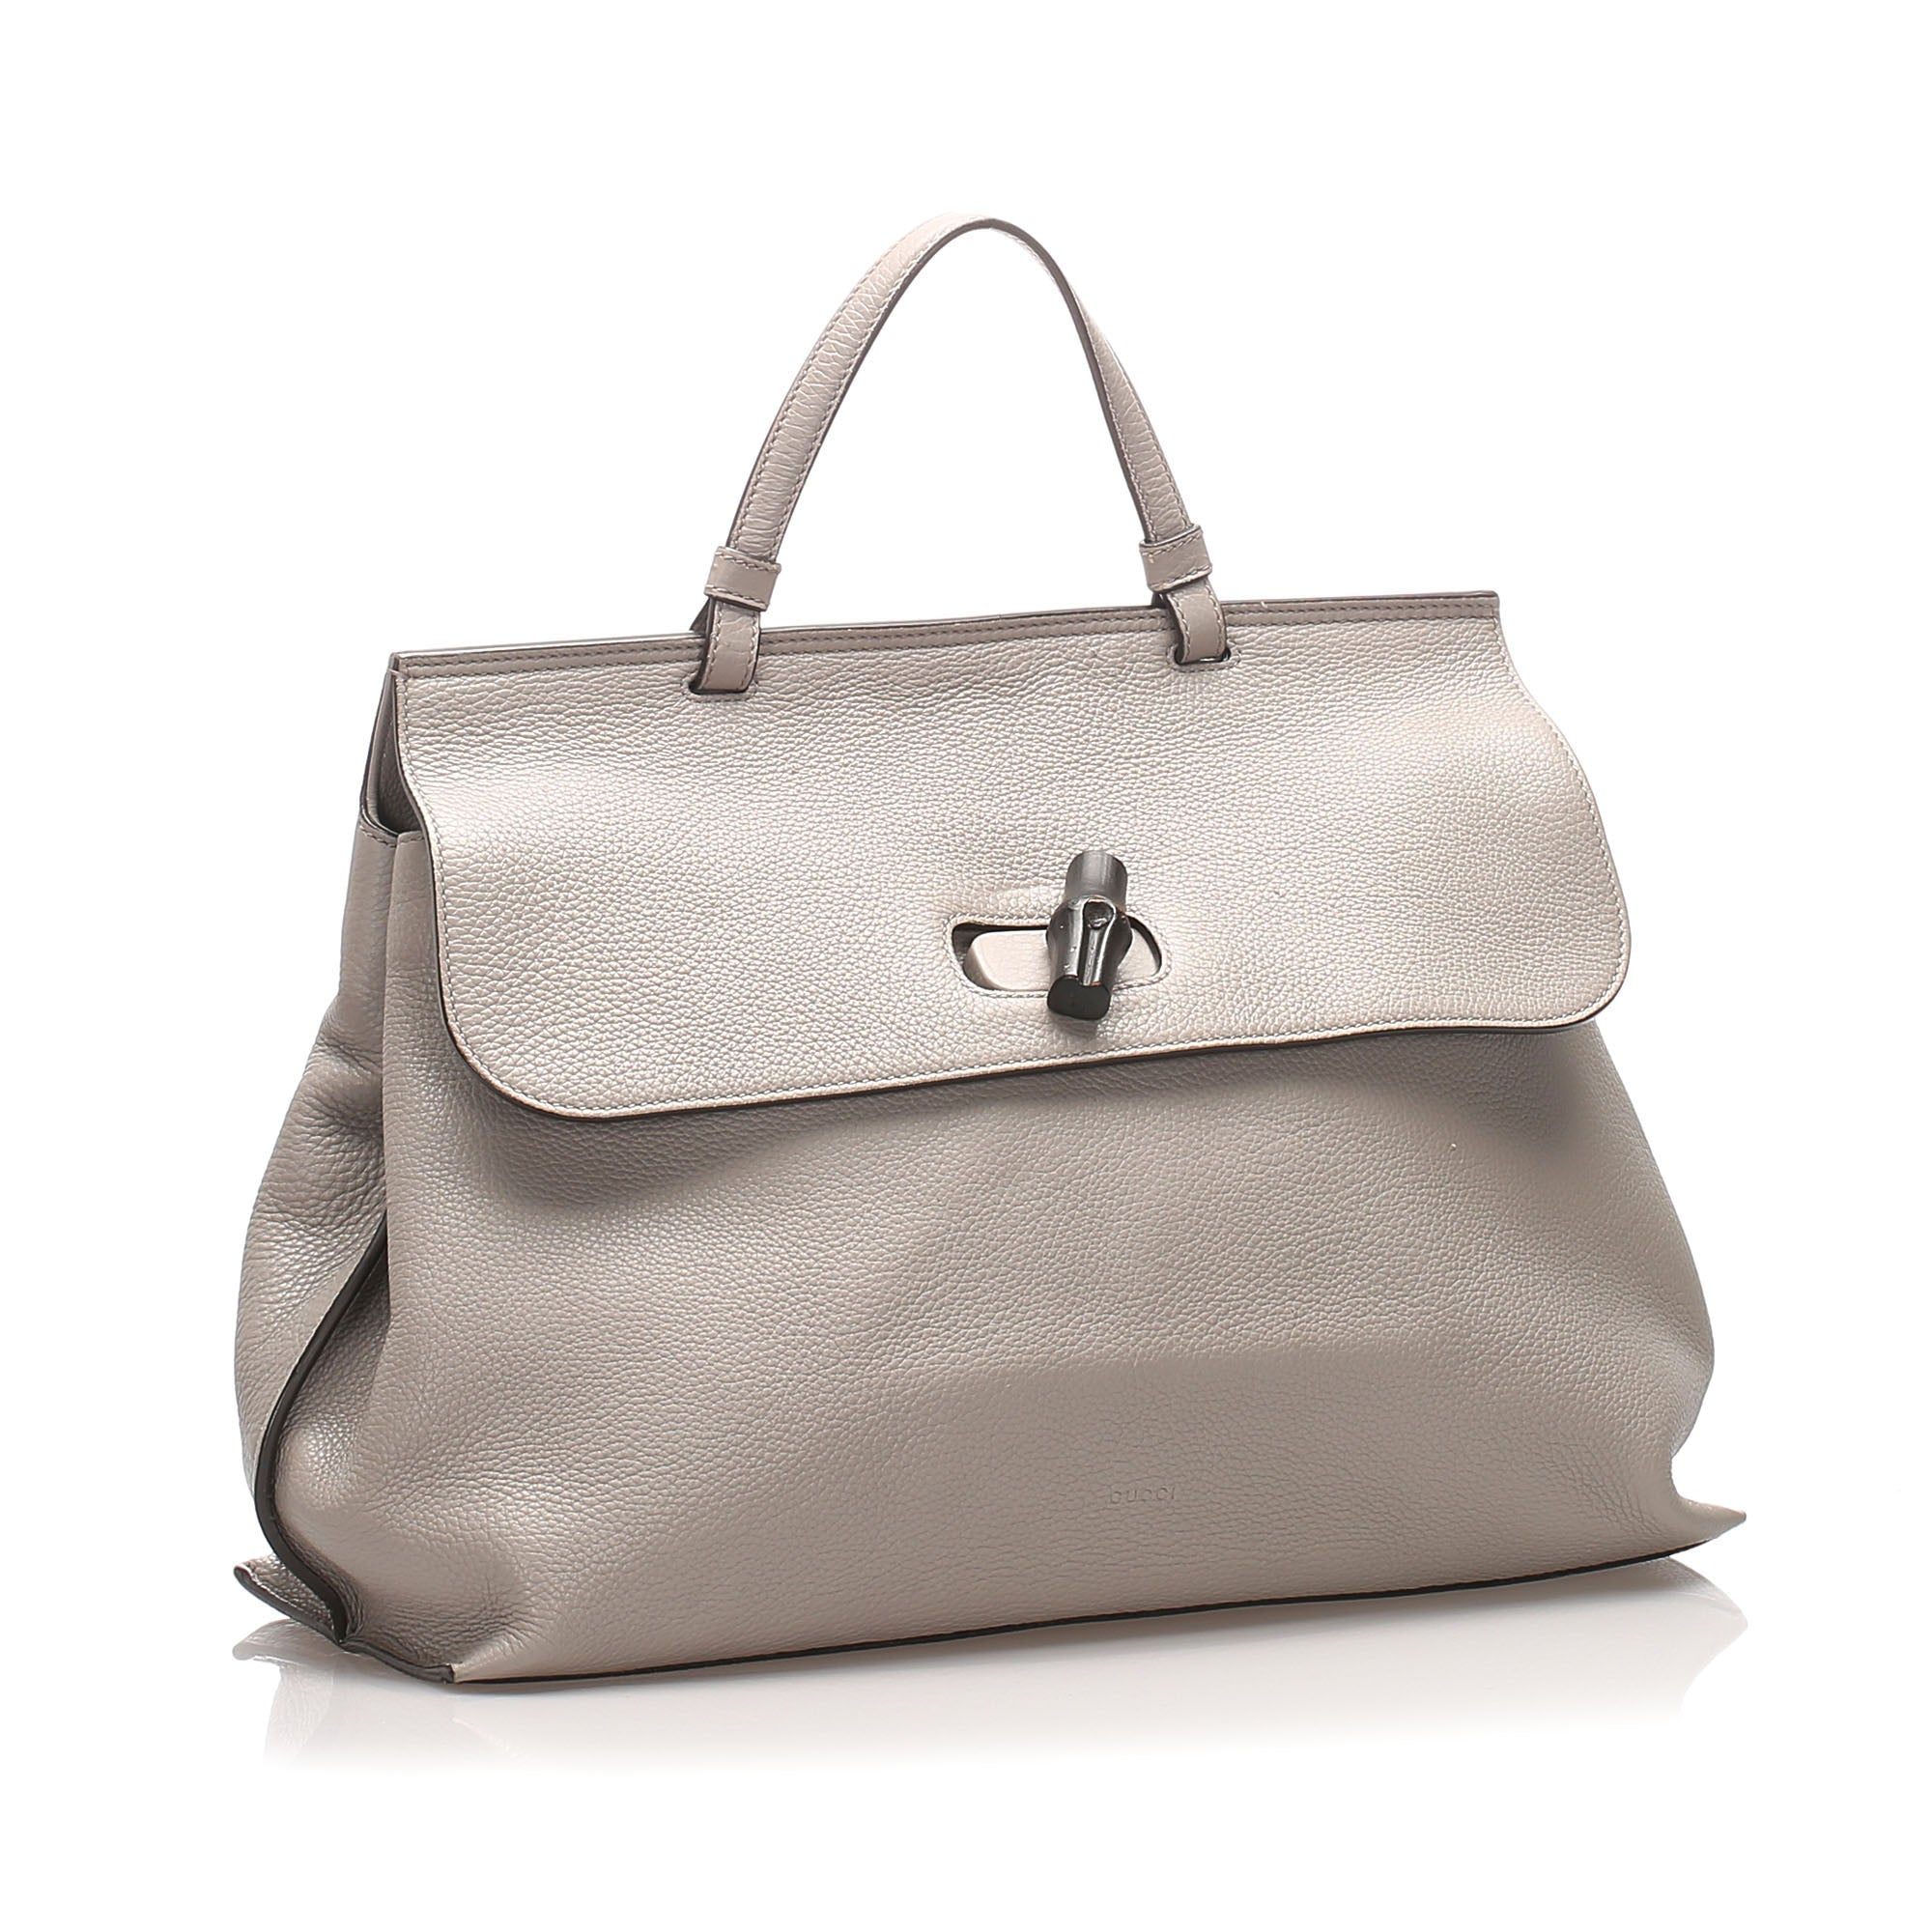 Gucci Gray Leather Bamboo Daily Handbag